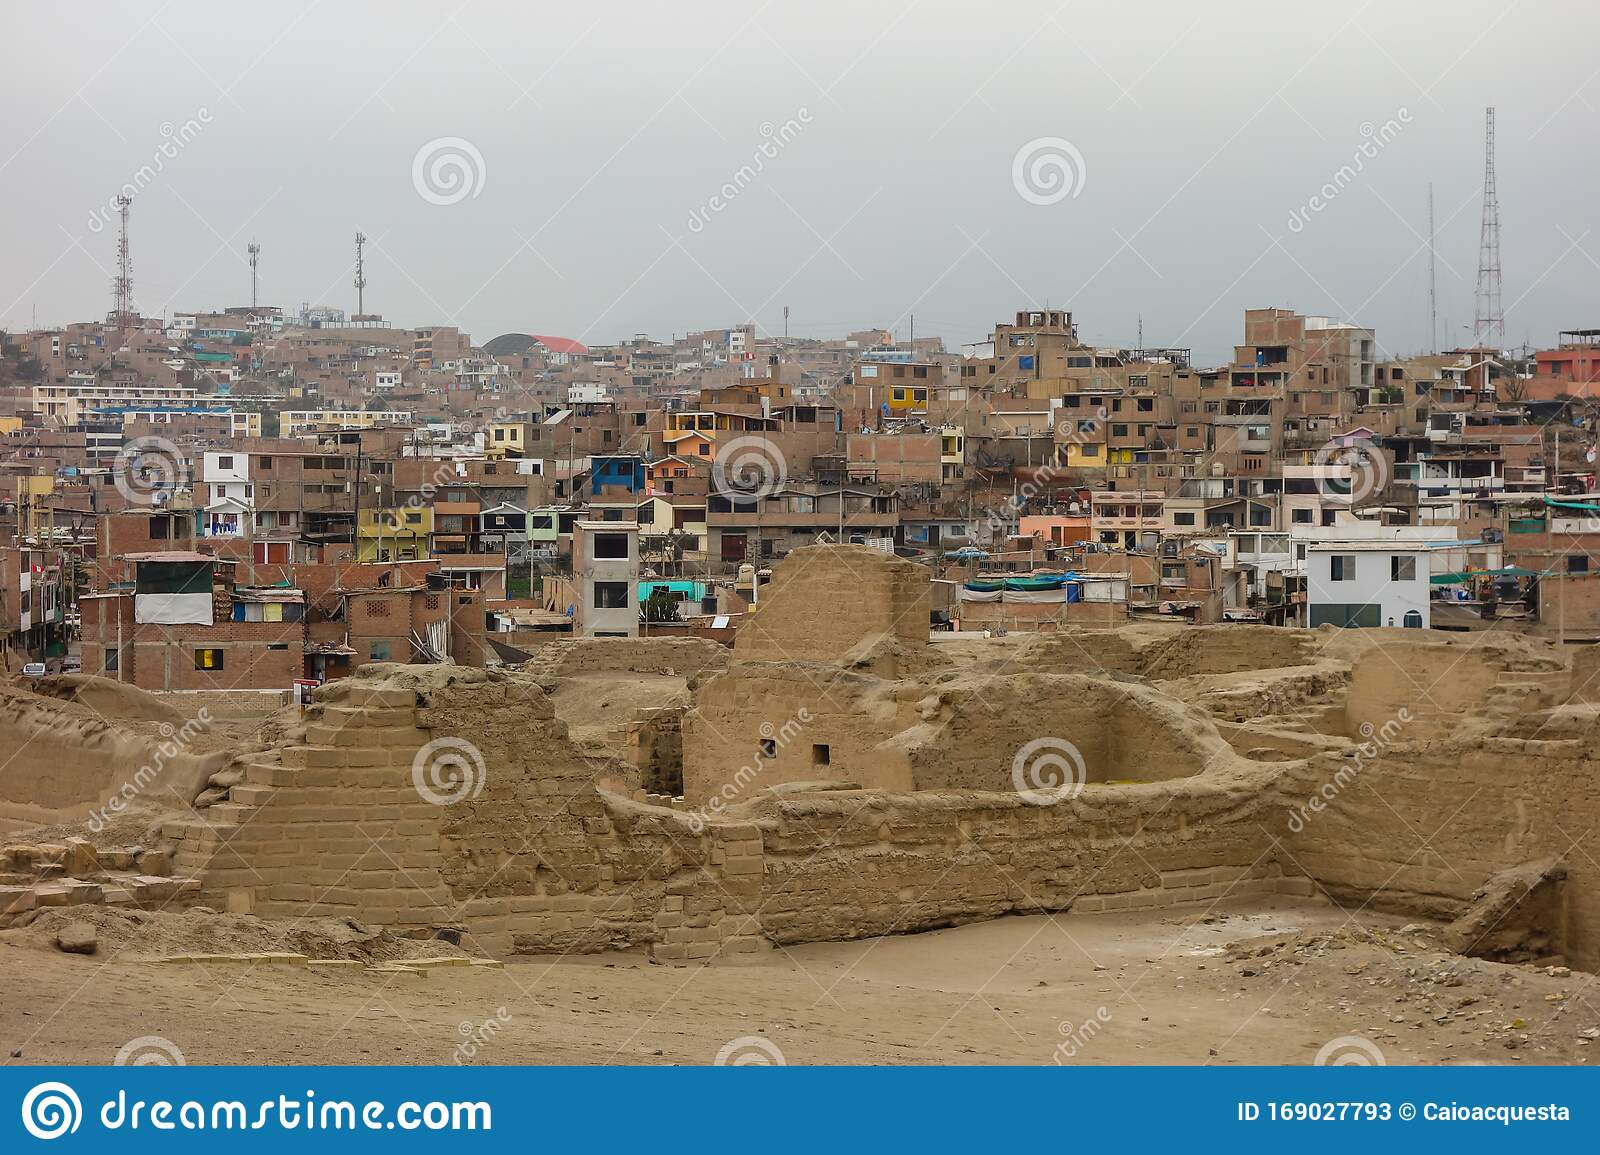 Lurin Lima Peru Sep 24 19 Pachacamac Archaeological Site Ruins City On Back Editorial Stock Photo Image Of Heritage Brick 169027793